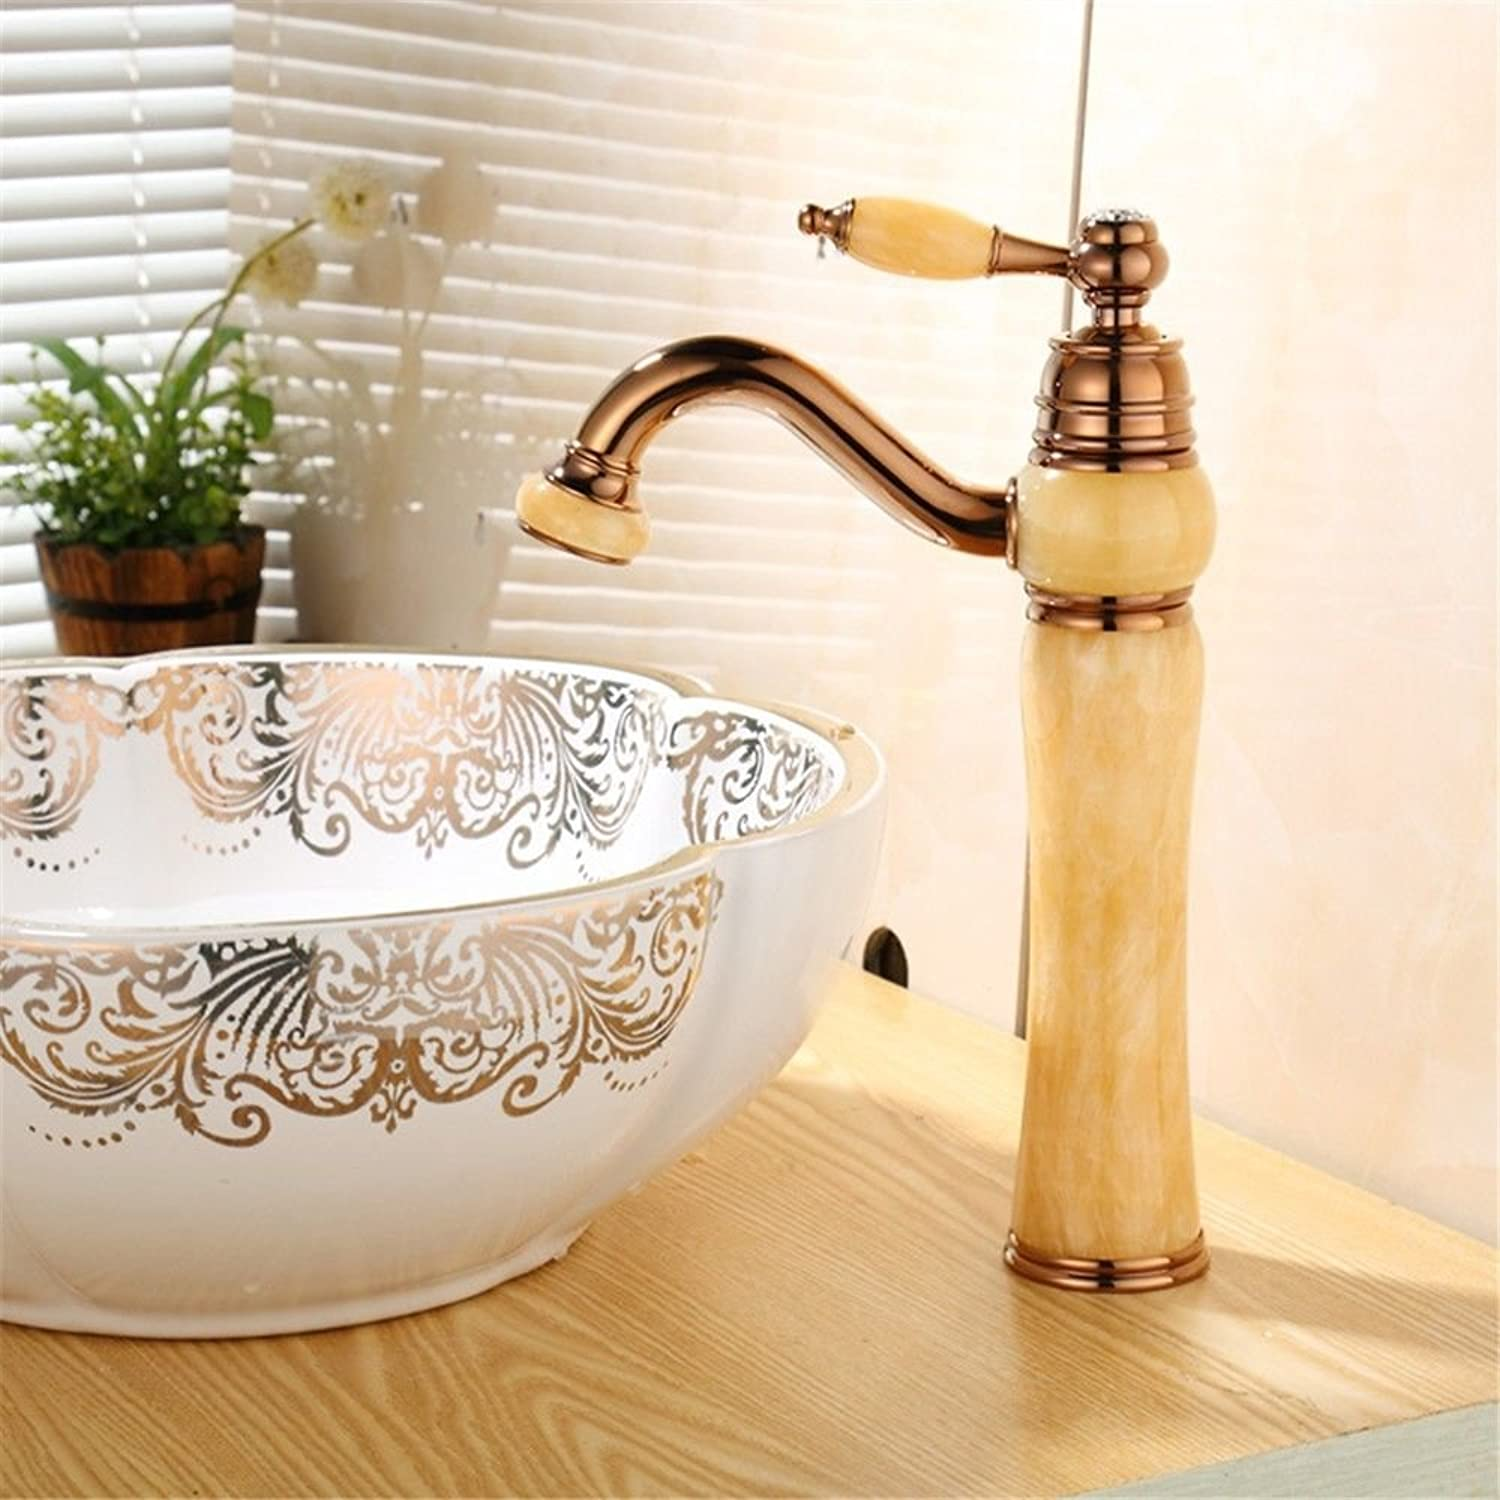 SADASD Contemporary Bathroom Full Copper Basin Faucet Jade Brass Chrome Plated pink gold Basin Sink Mixer Tap Ceramic Spool Single Hole Single Handle Cold Water With G1 2 Hose